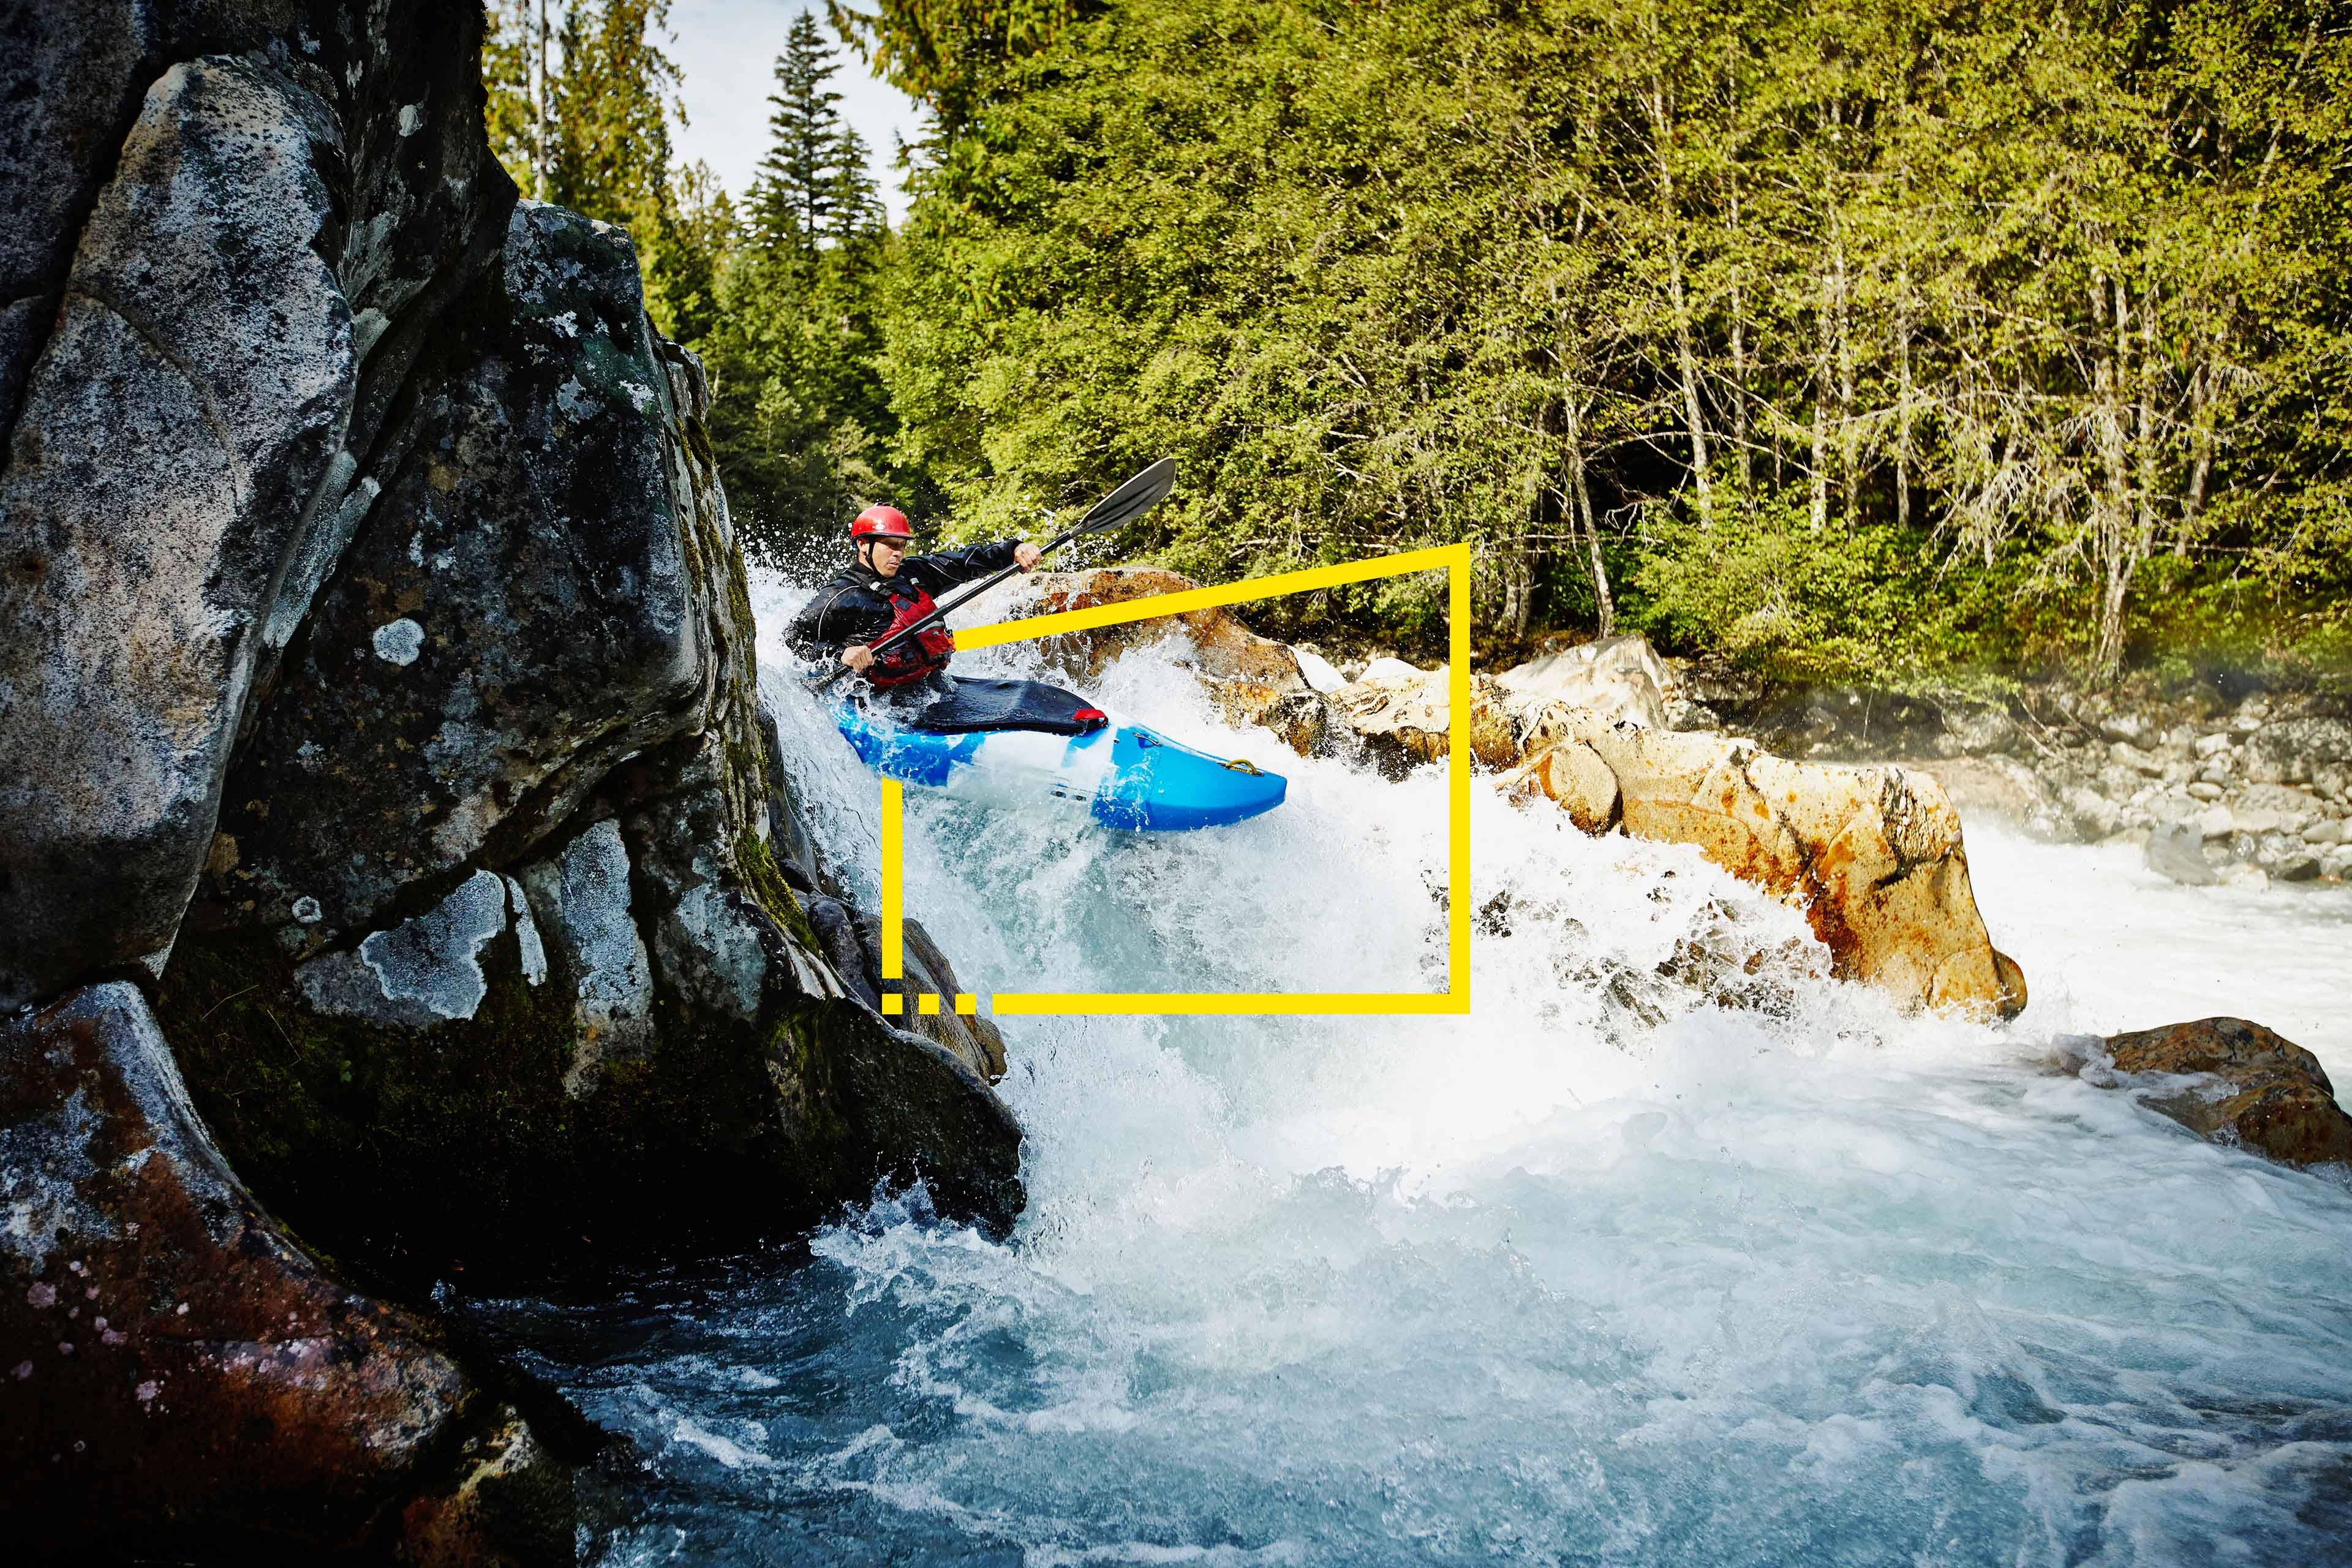 Man kayaking between rocks in white water rapids